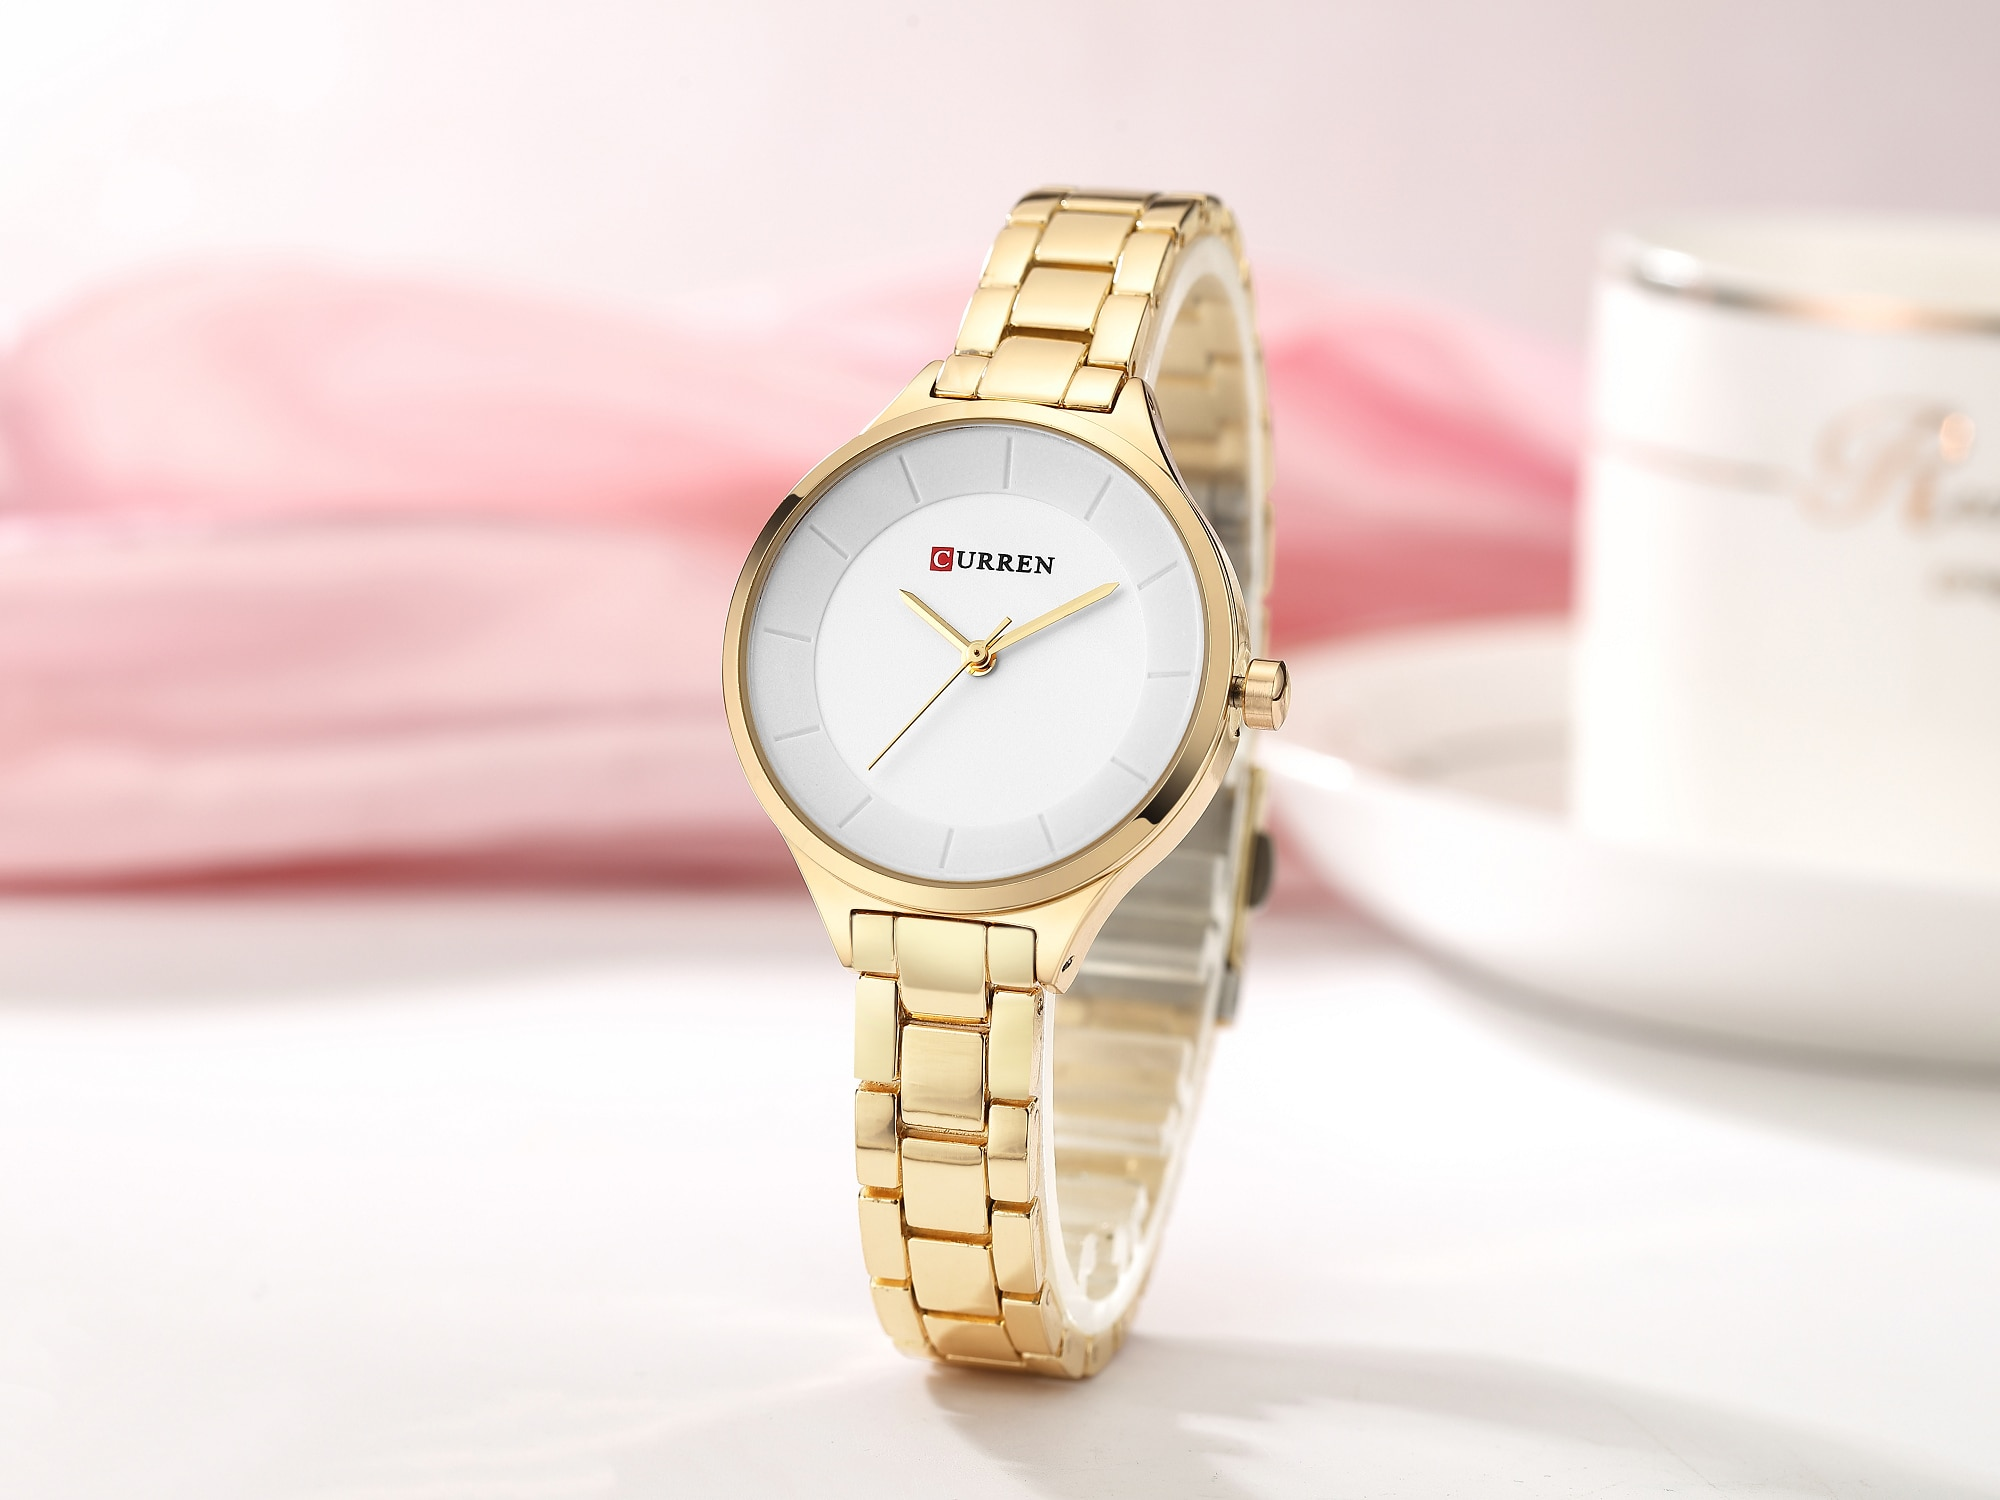 CURREN Female Watch Fashion Luxury Women Watches New Arrival Stainless Steel Quartz Wrist Watch Waterproof Valentine's Day Gift enlarge